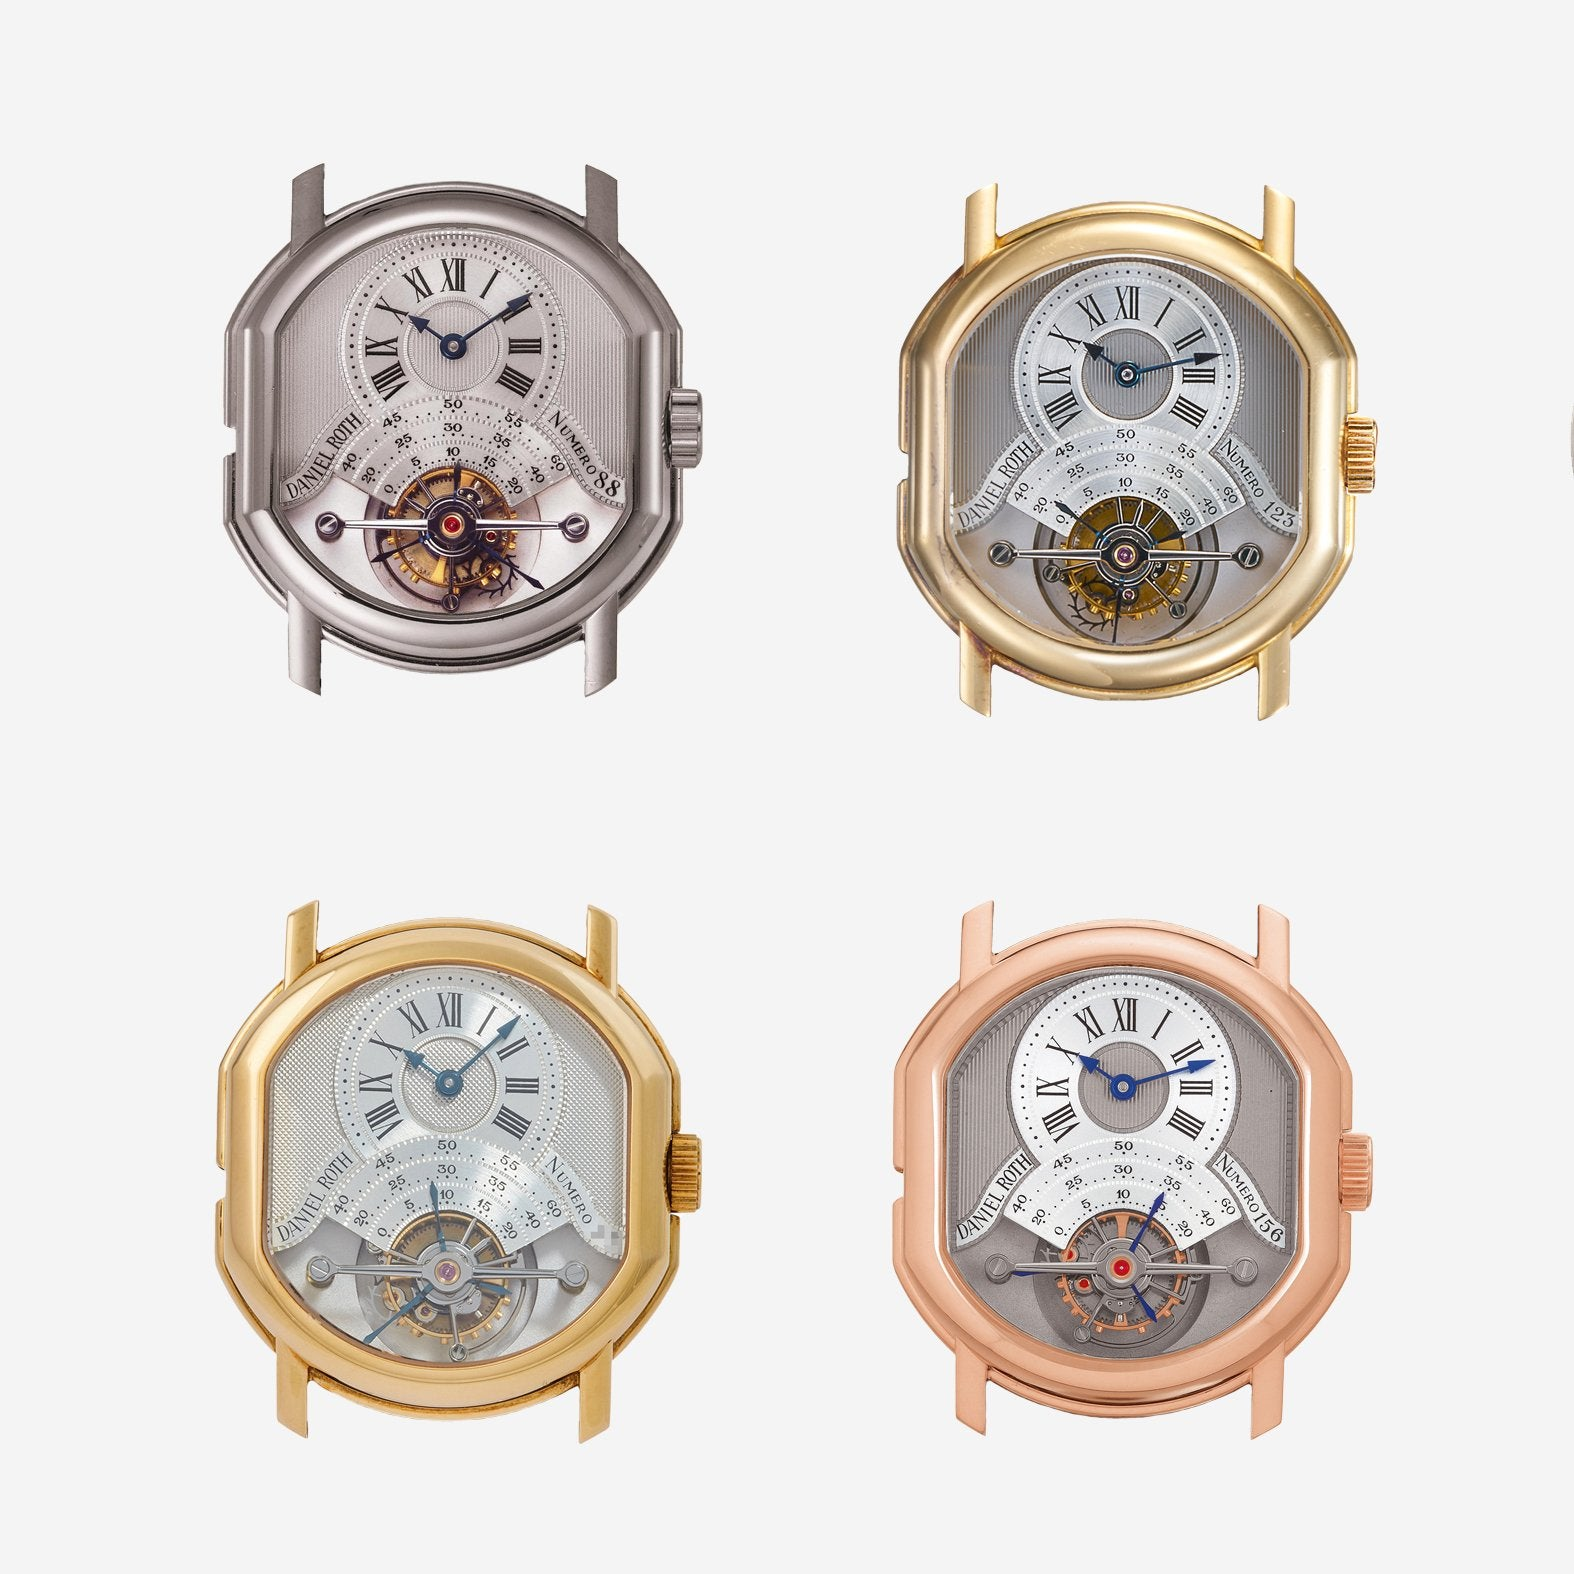 Daniel Roth Tourbillon in The Rise of Neo-Vintage Watches for A Collected Man London